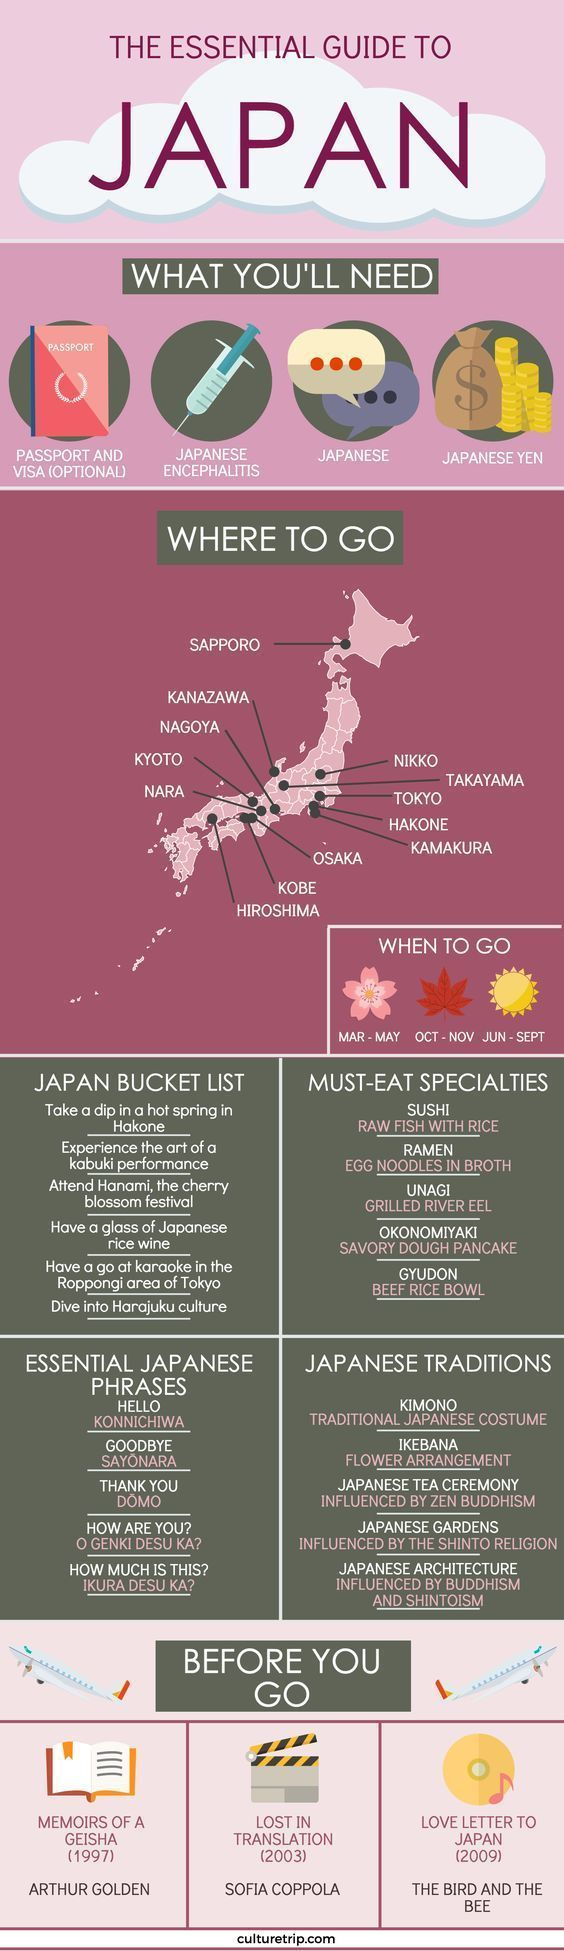 The Best Travel Guide For Travelling To Japan #travelinfographic